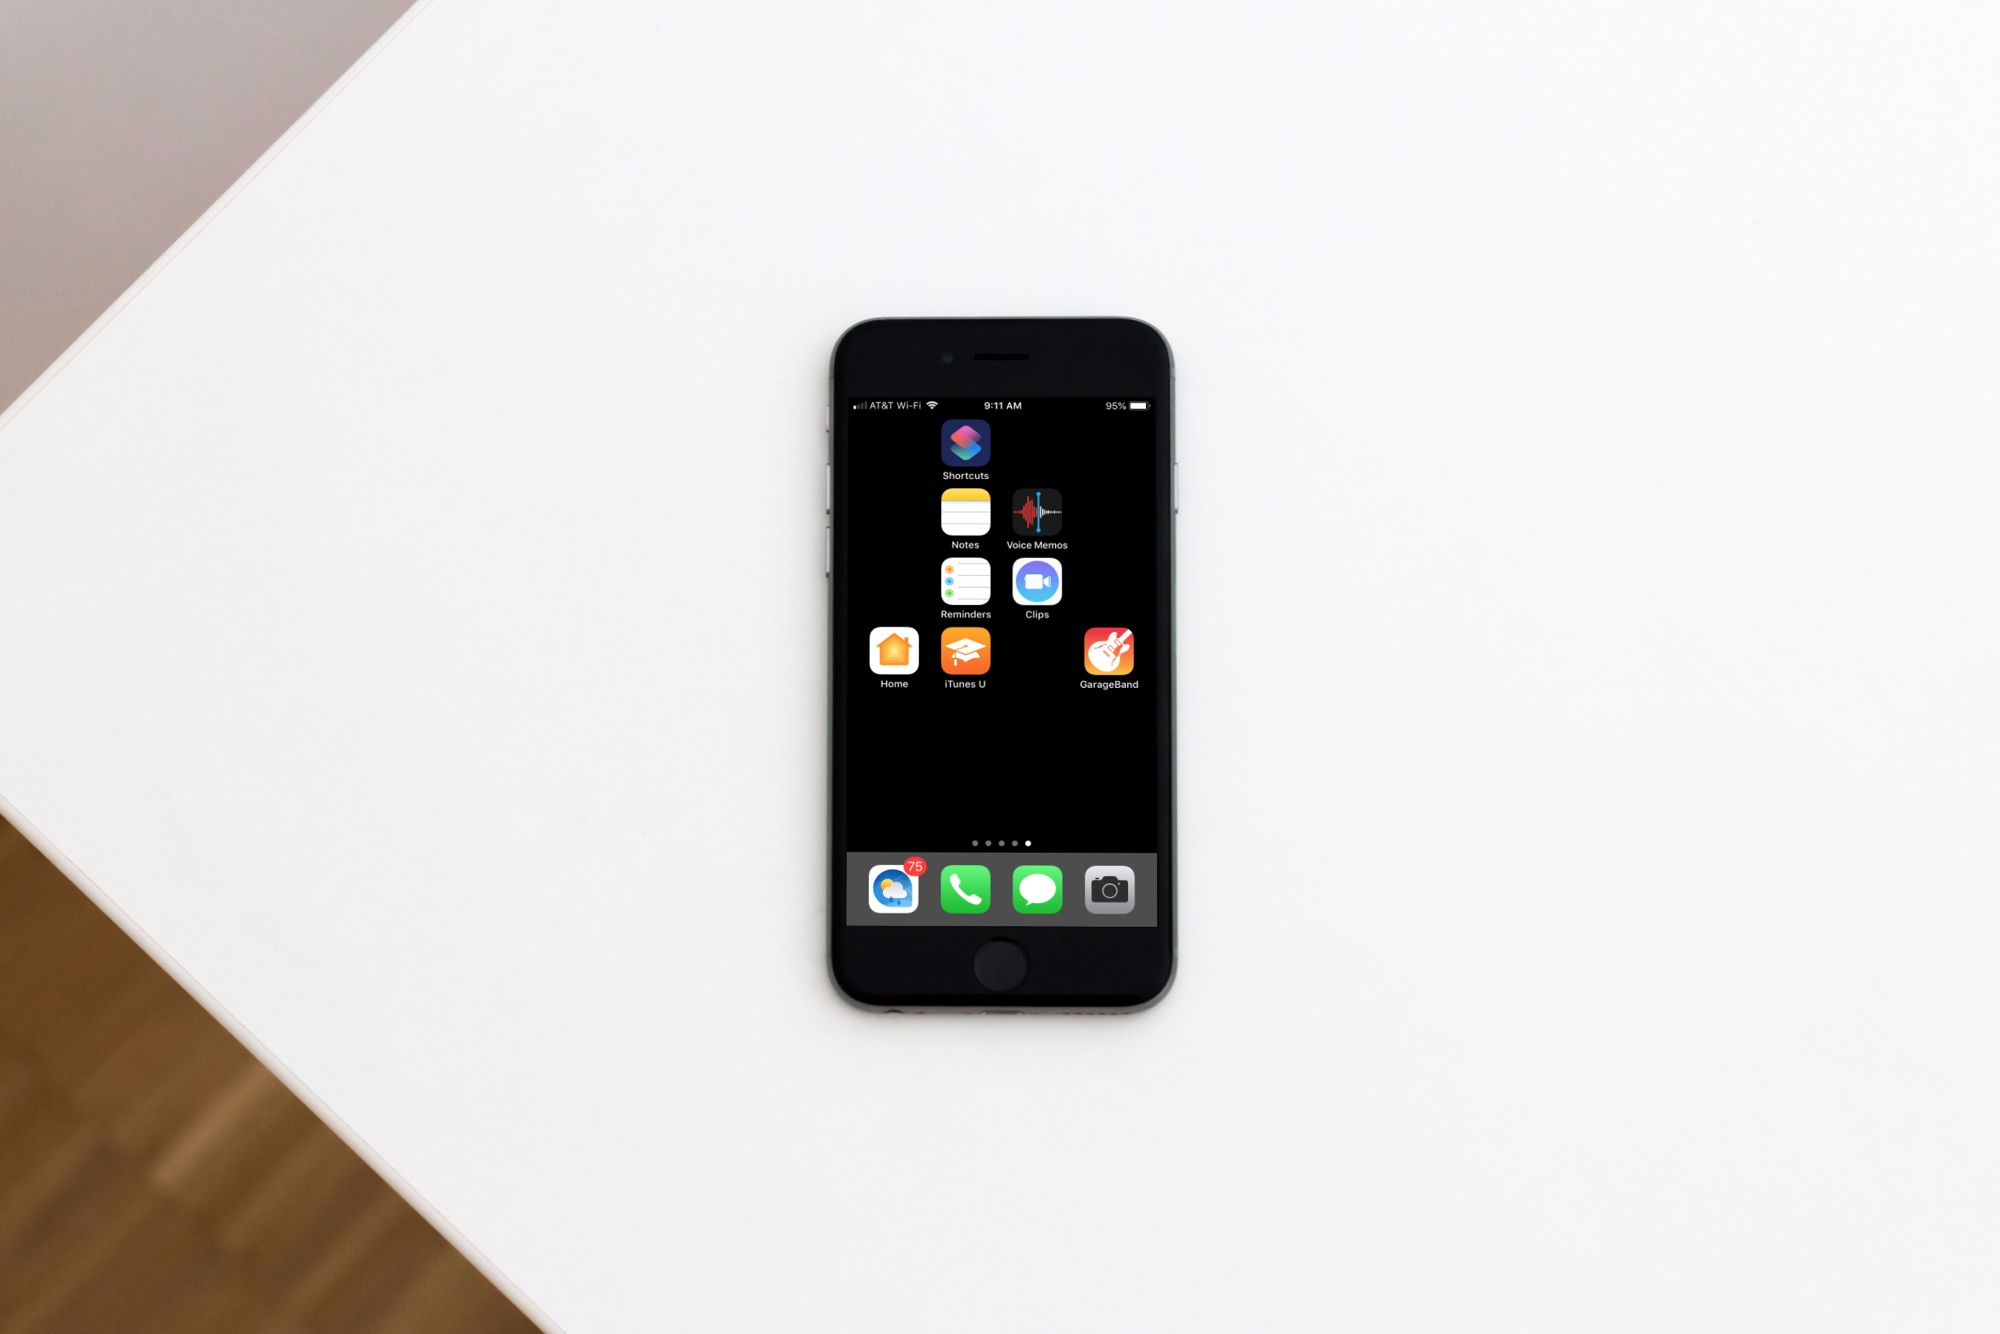 Blank Icons on iPhone on Desk